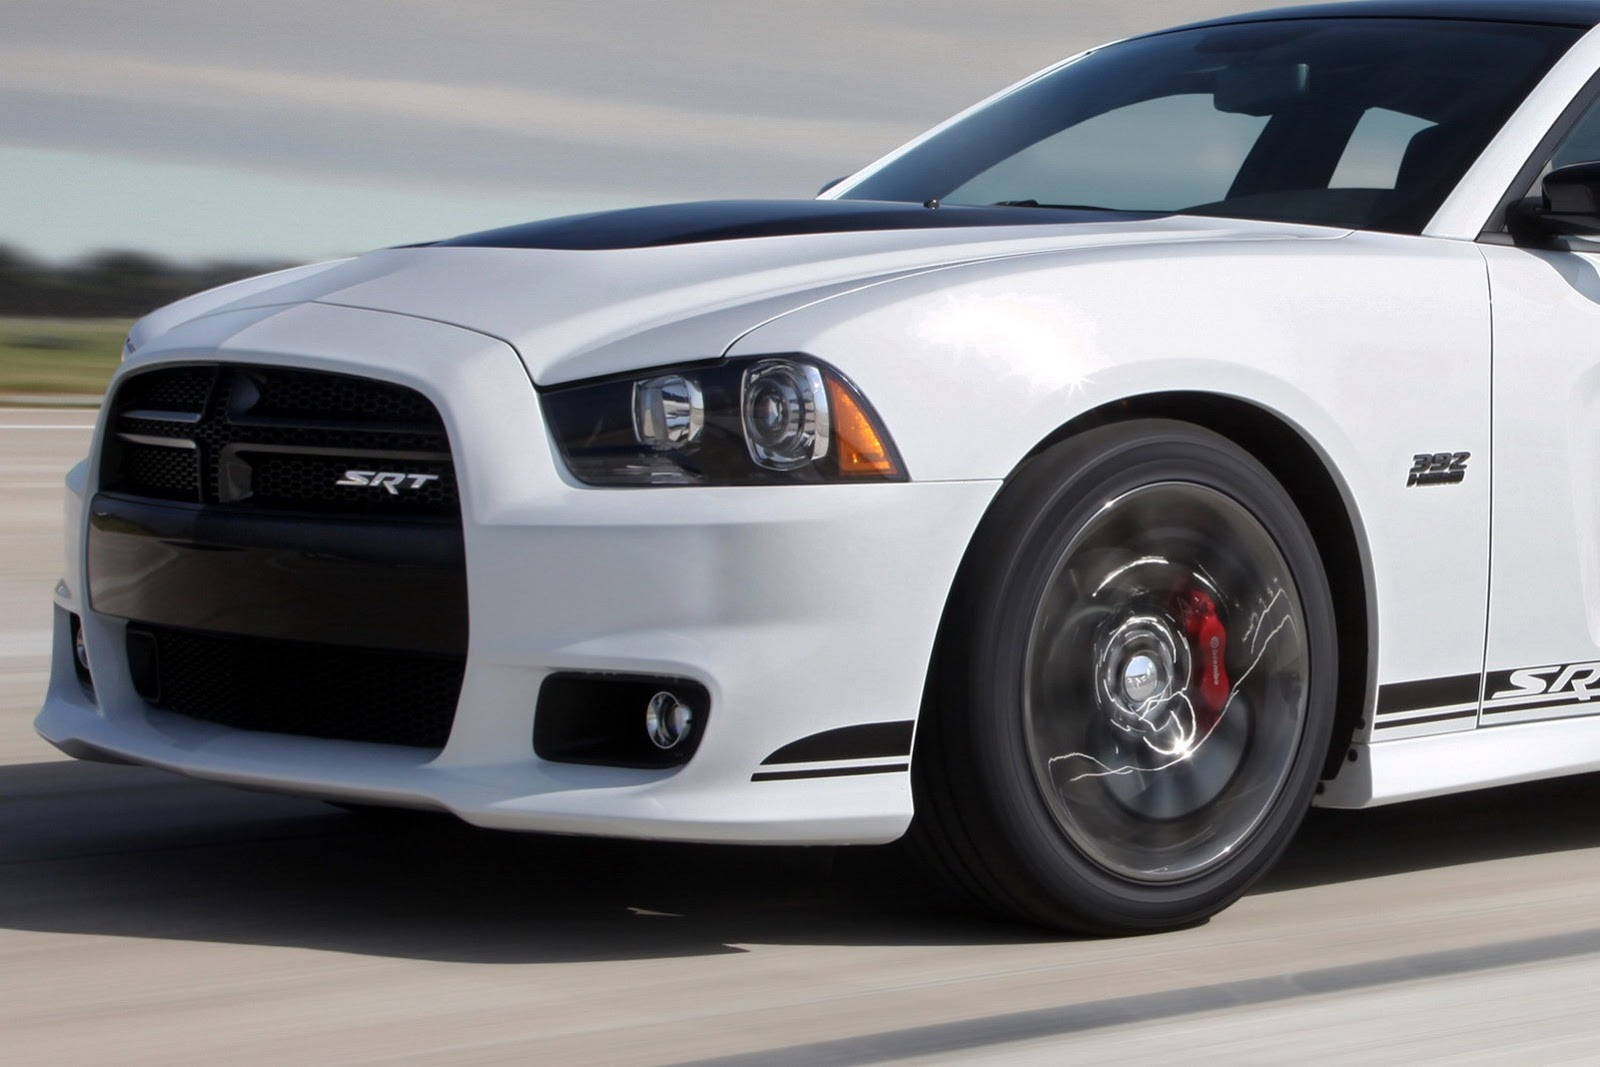 2013 Charger 392 Feels Fake Amcarguide Com American